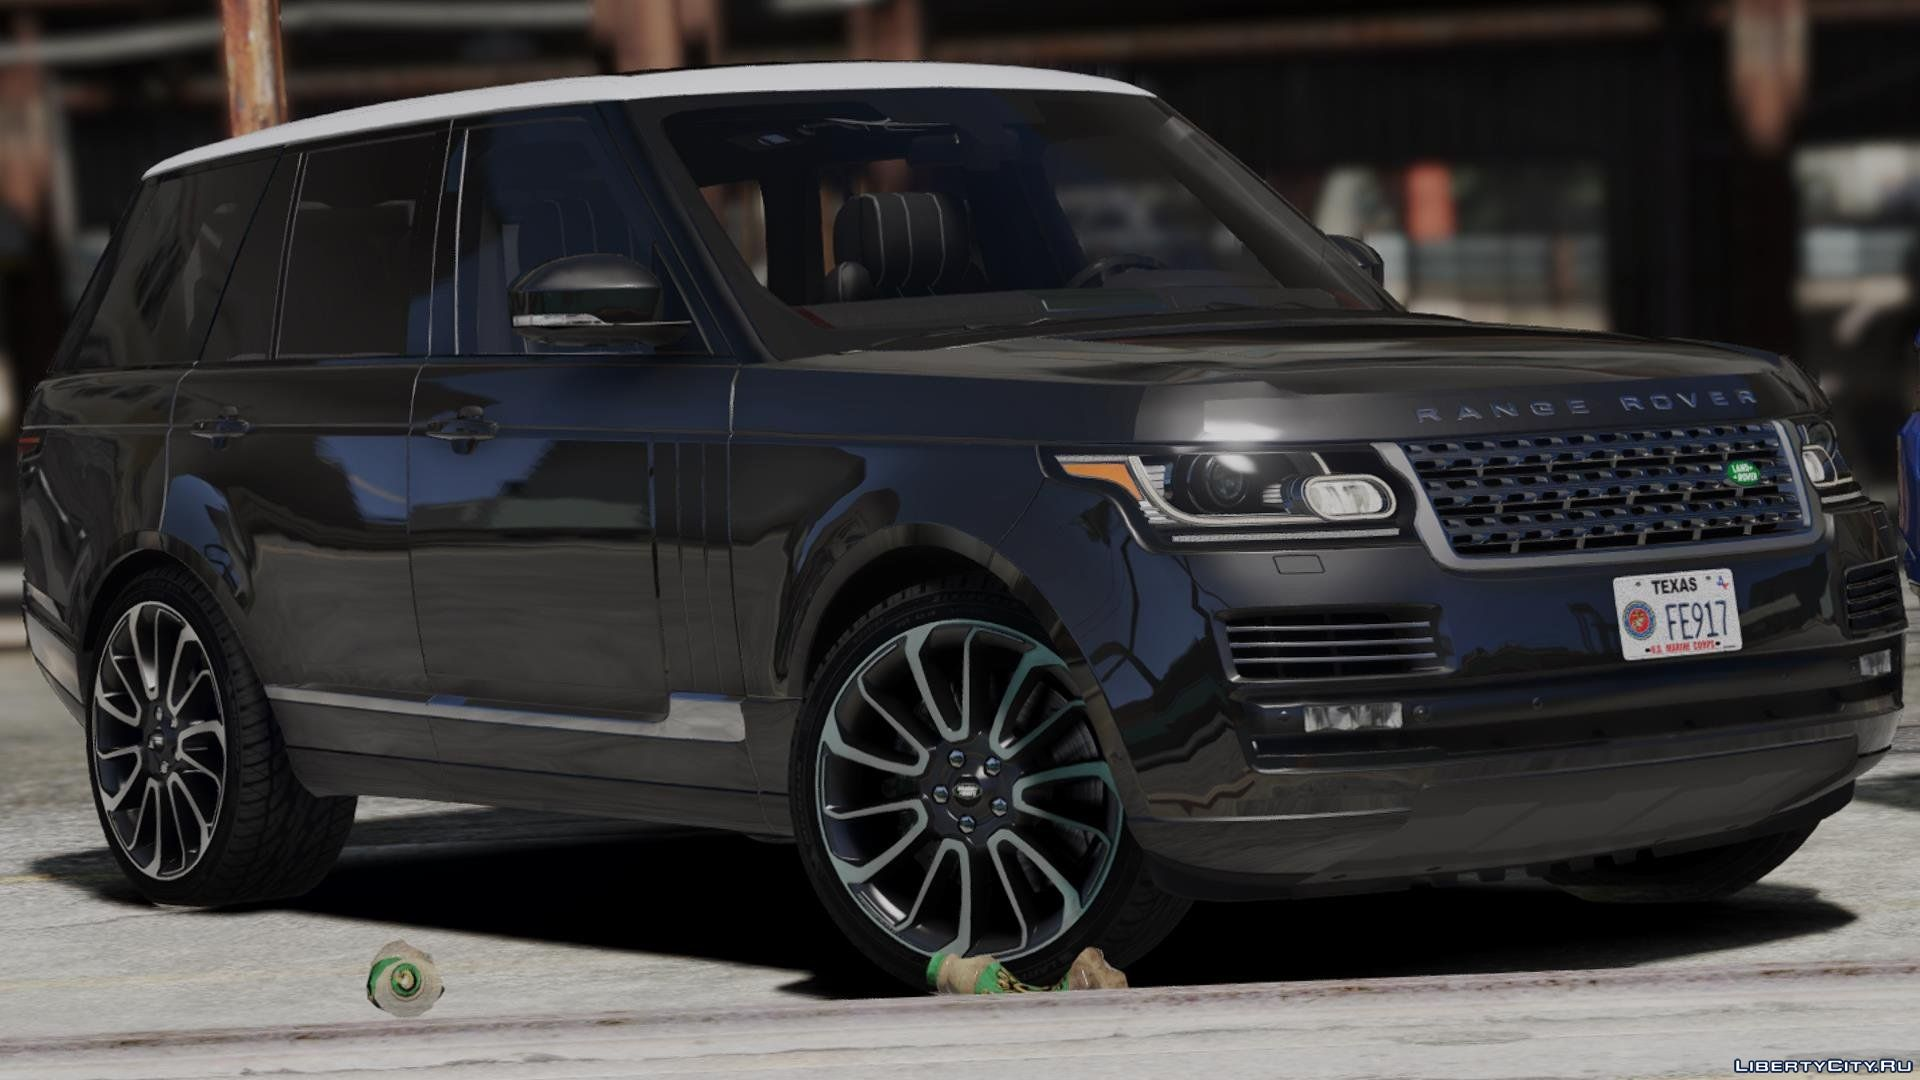 2014 range rover vogue sc 3 0 v6 add on replace for gta 5. Black Bedroom Furniture Sets. Home Design Ideas